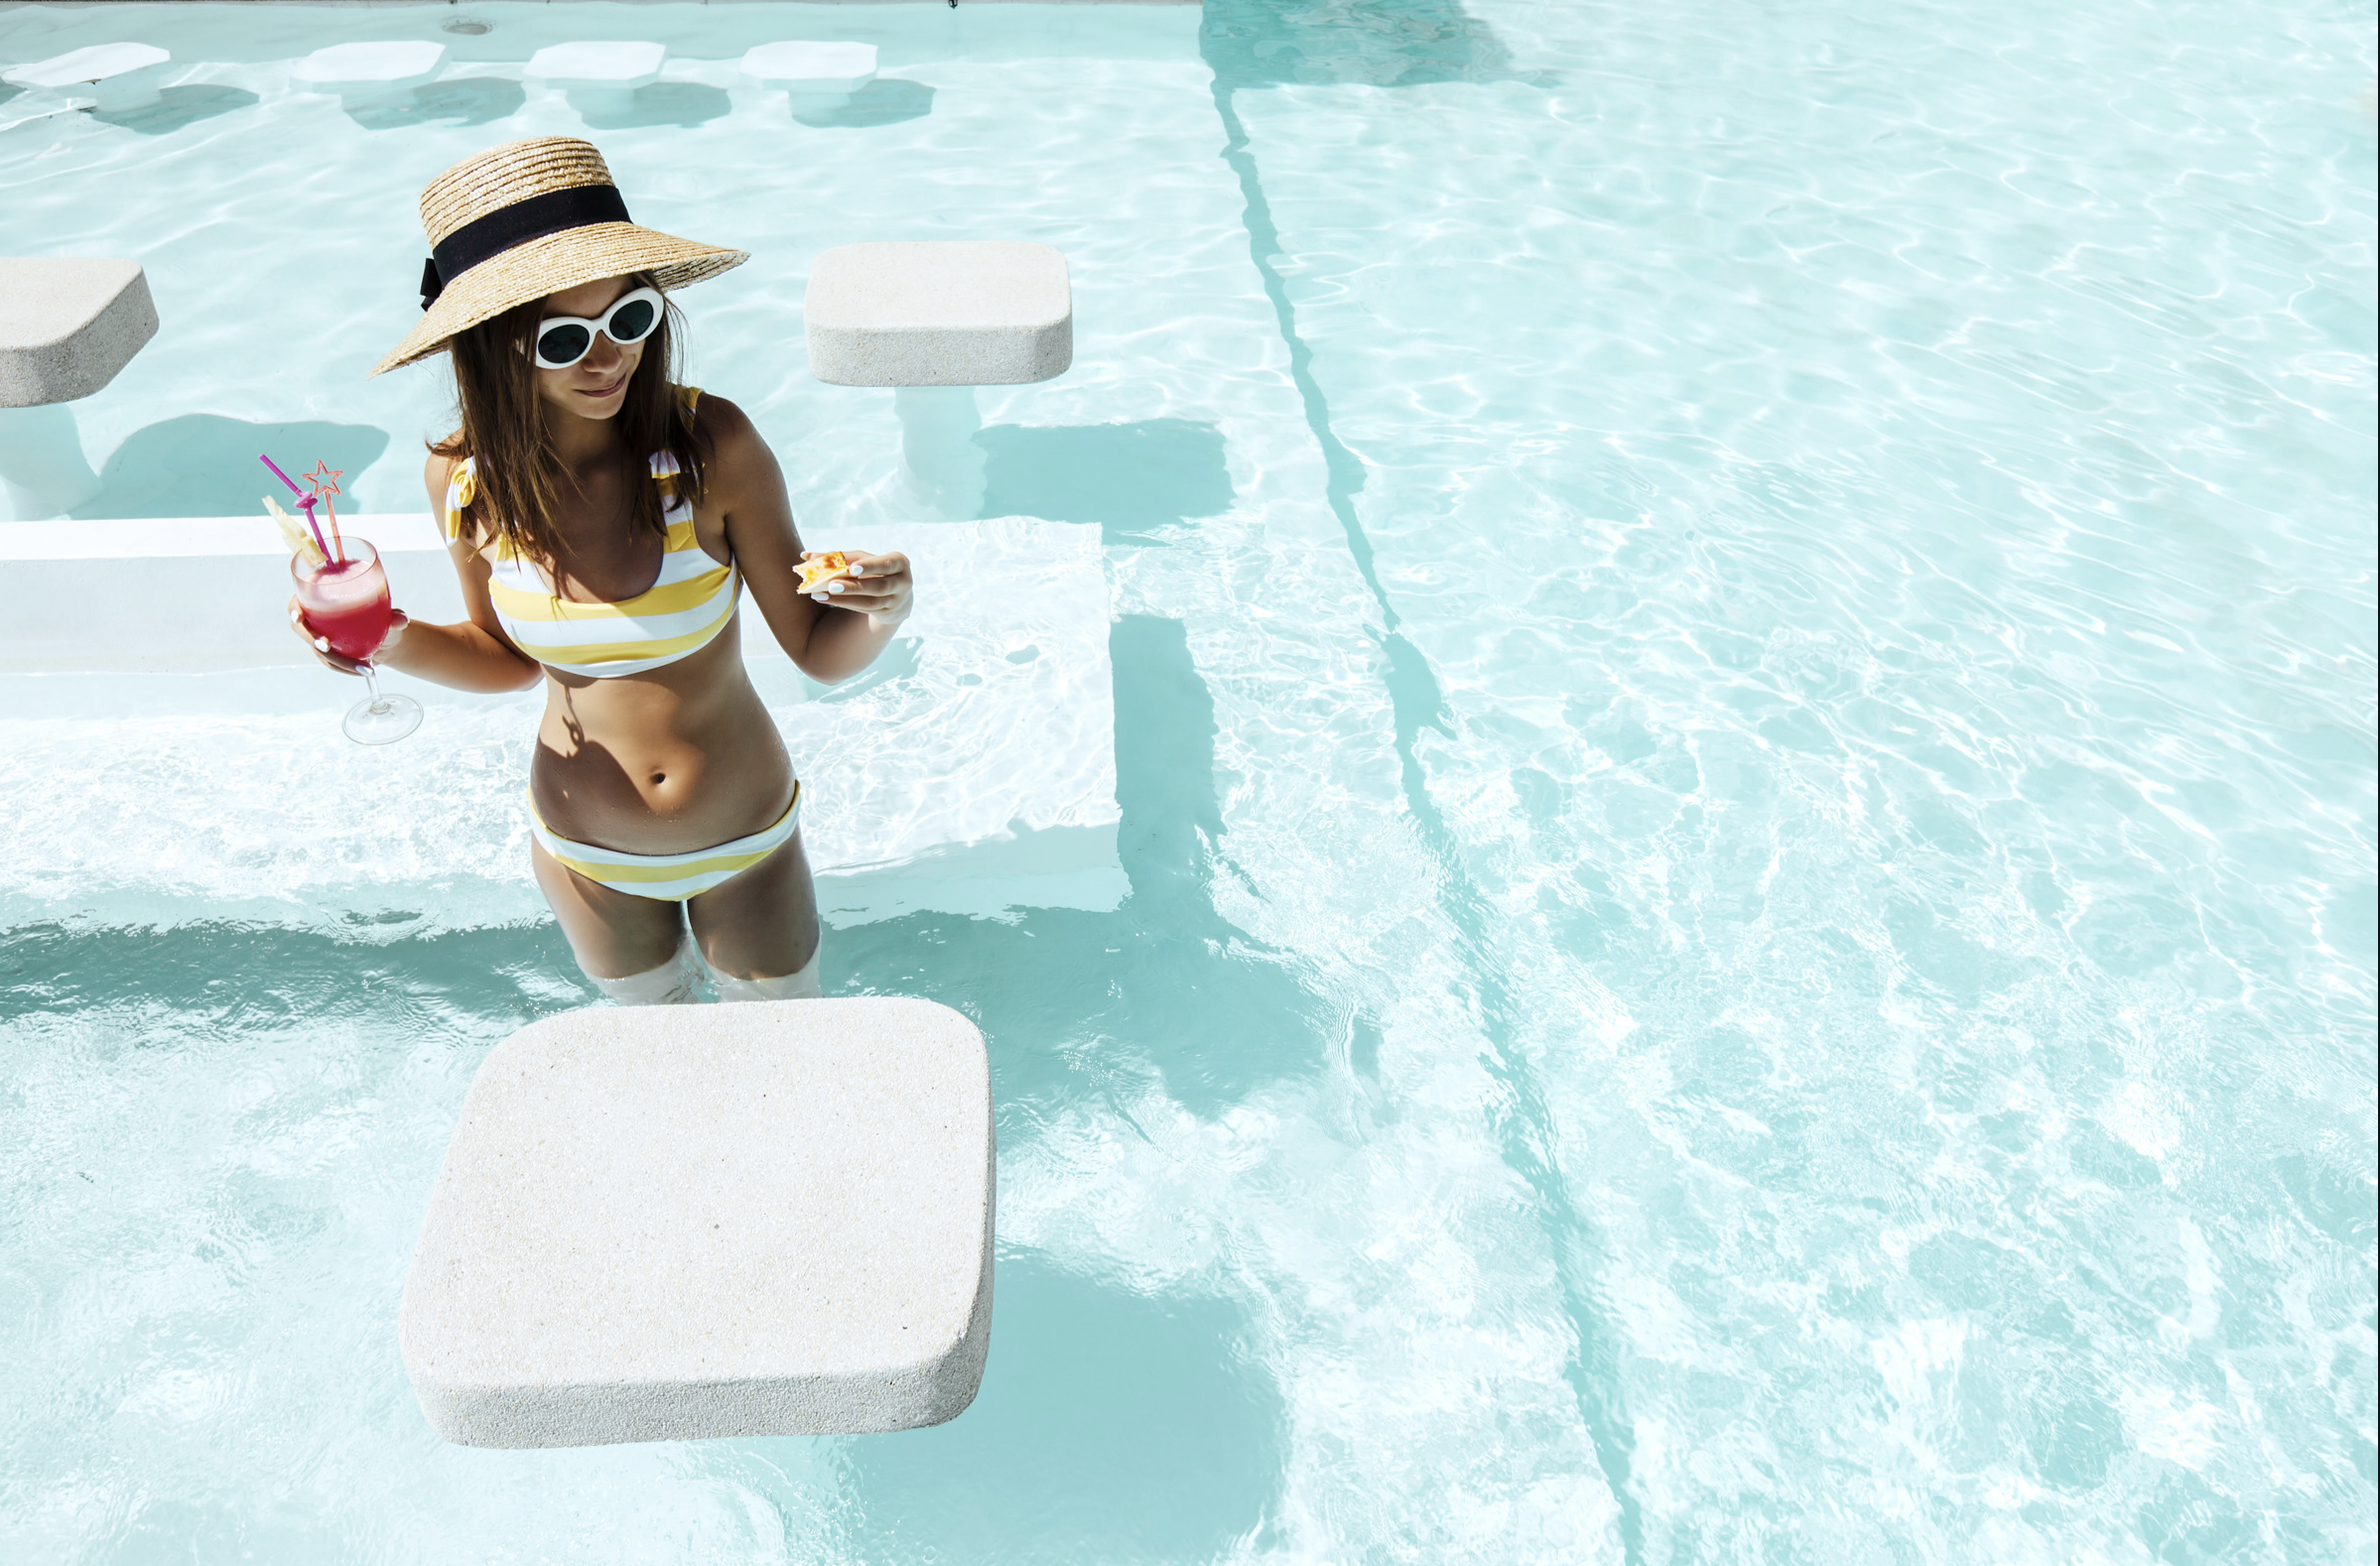 Girl in the pool holding a drink